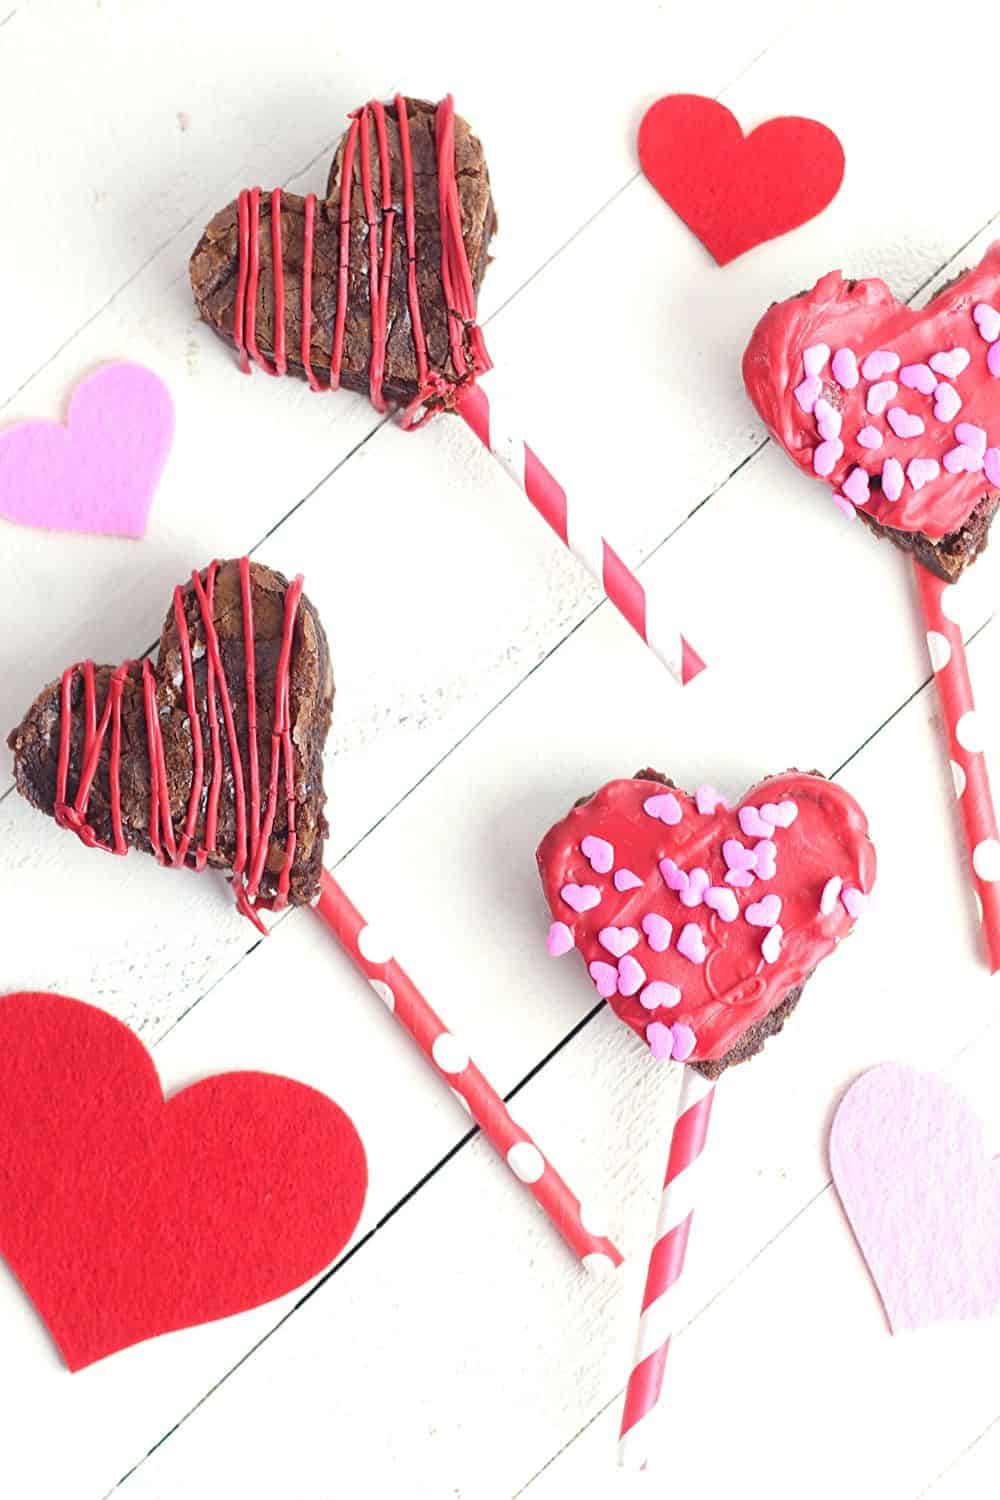 These heart-shaped Valentine Brownie Pops are an easy holiday treat. They are an easy dessert to make for Valentine's Day or all year long.